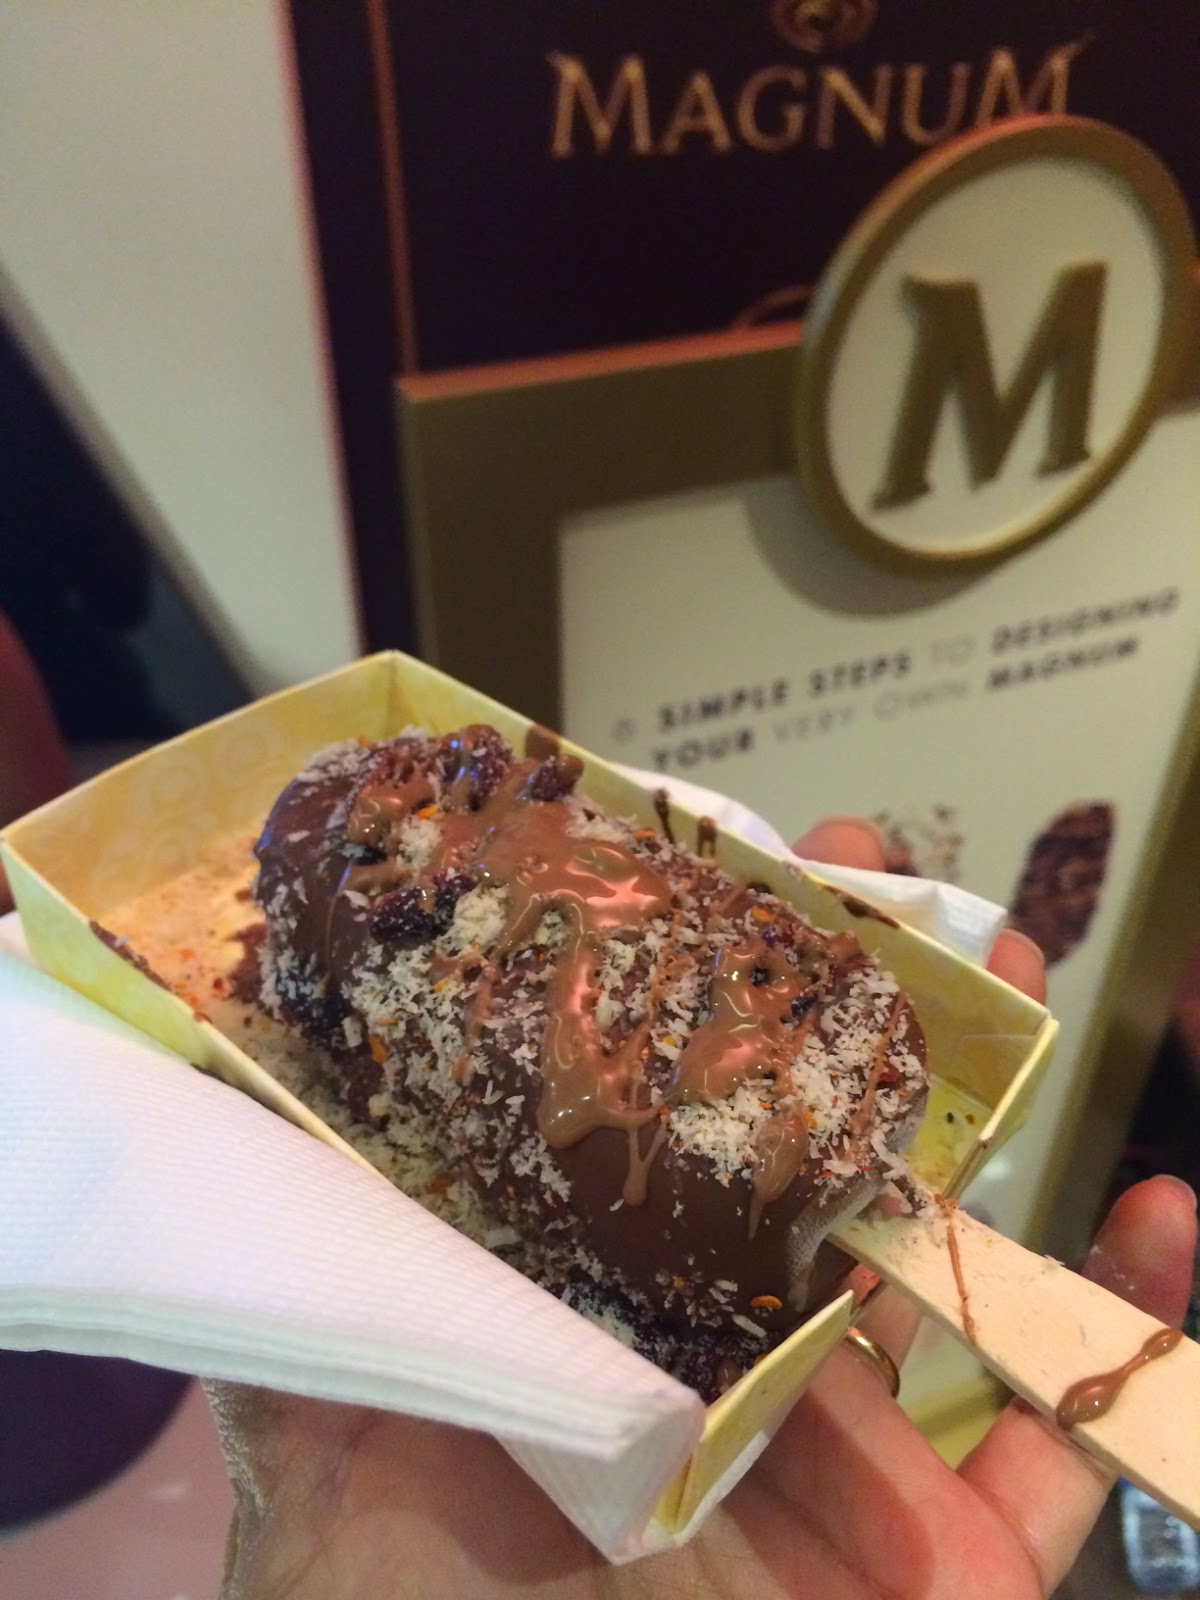 Magnum Store Karachi - Magnum with coconut, cranberries and chilli flakes